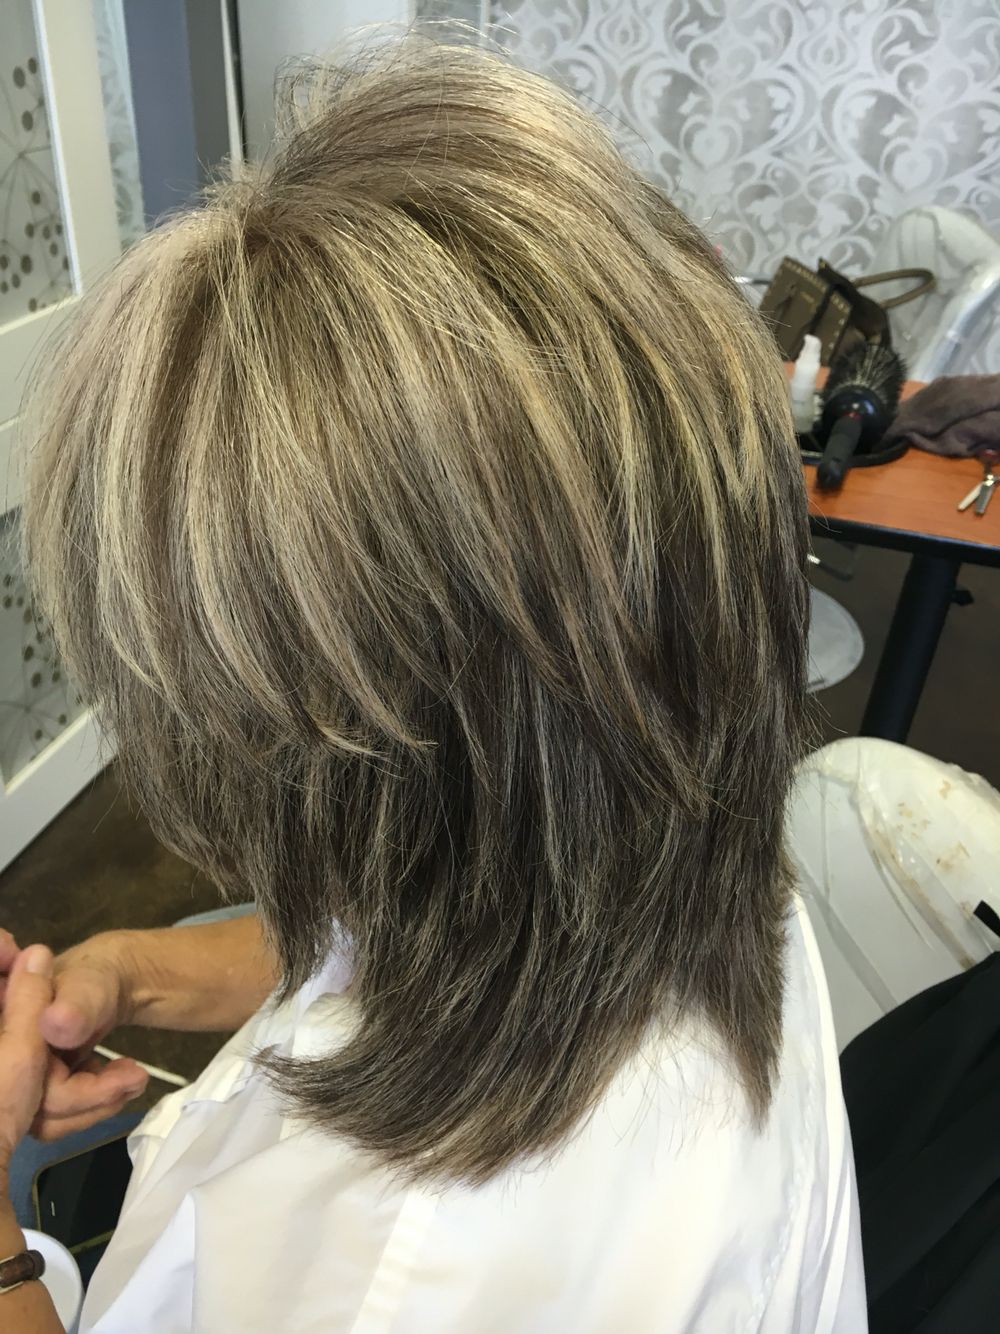 Super Shaggy Layers On A Silver Platinum Blonde With A Dark Golden Brown Base Pravana Color Red Haircuts For Medium Hair Layered Haircuts Medium Hair Styles